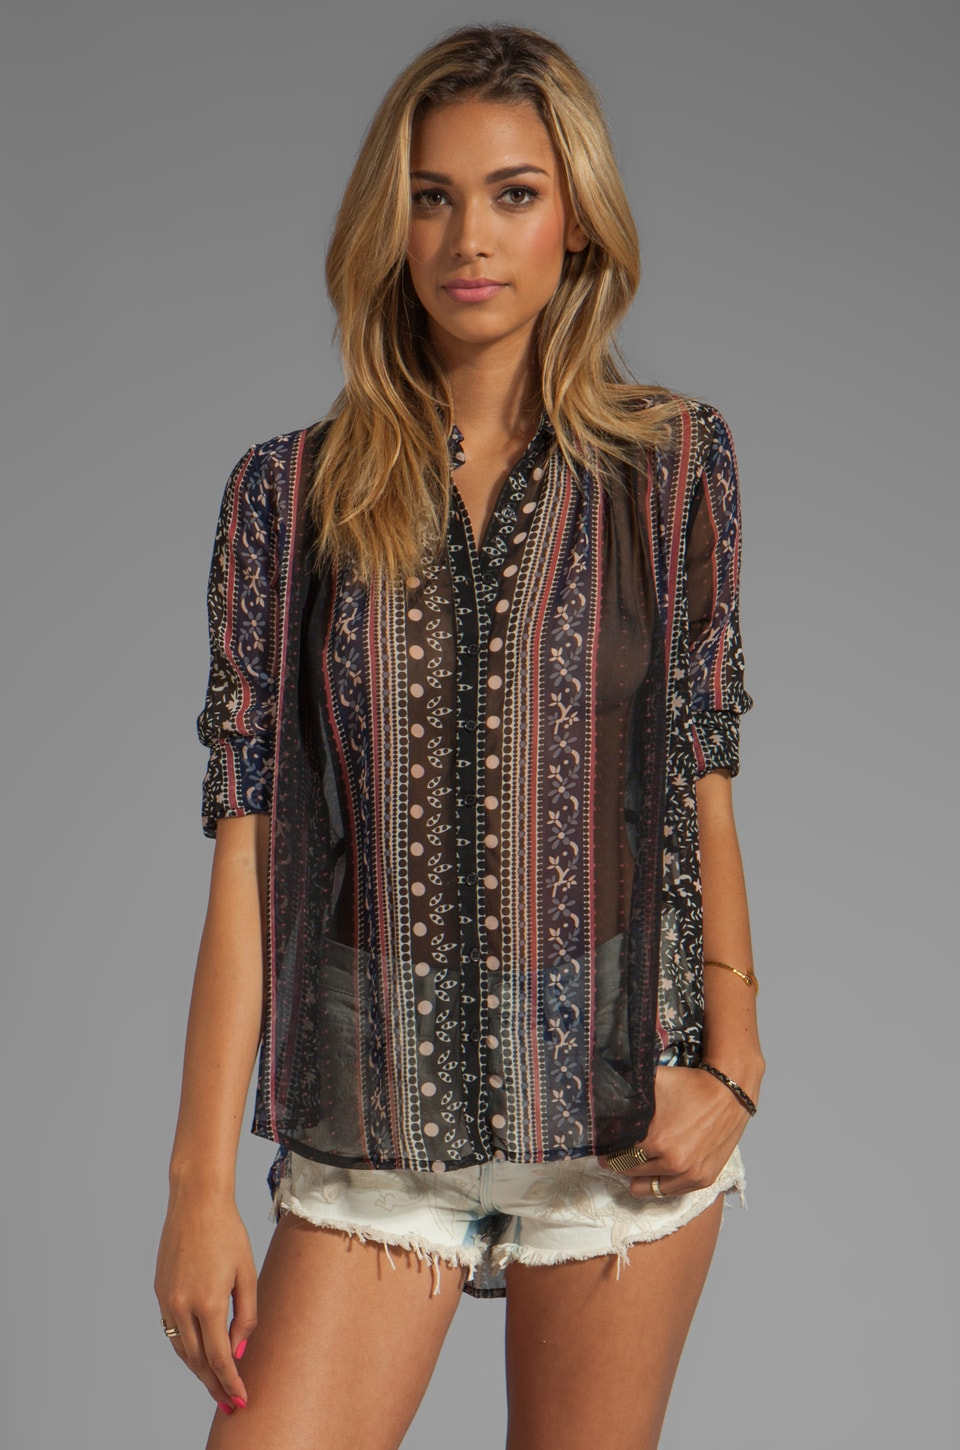 Free People Moonlight Mile Woven Top in Black Combo